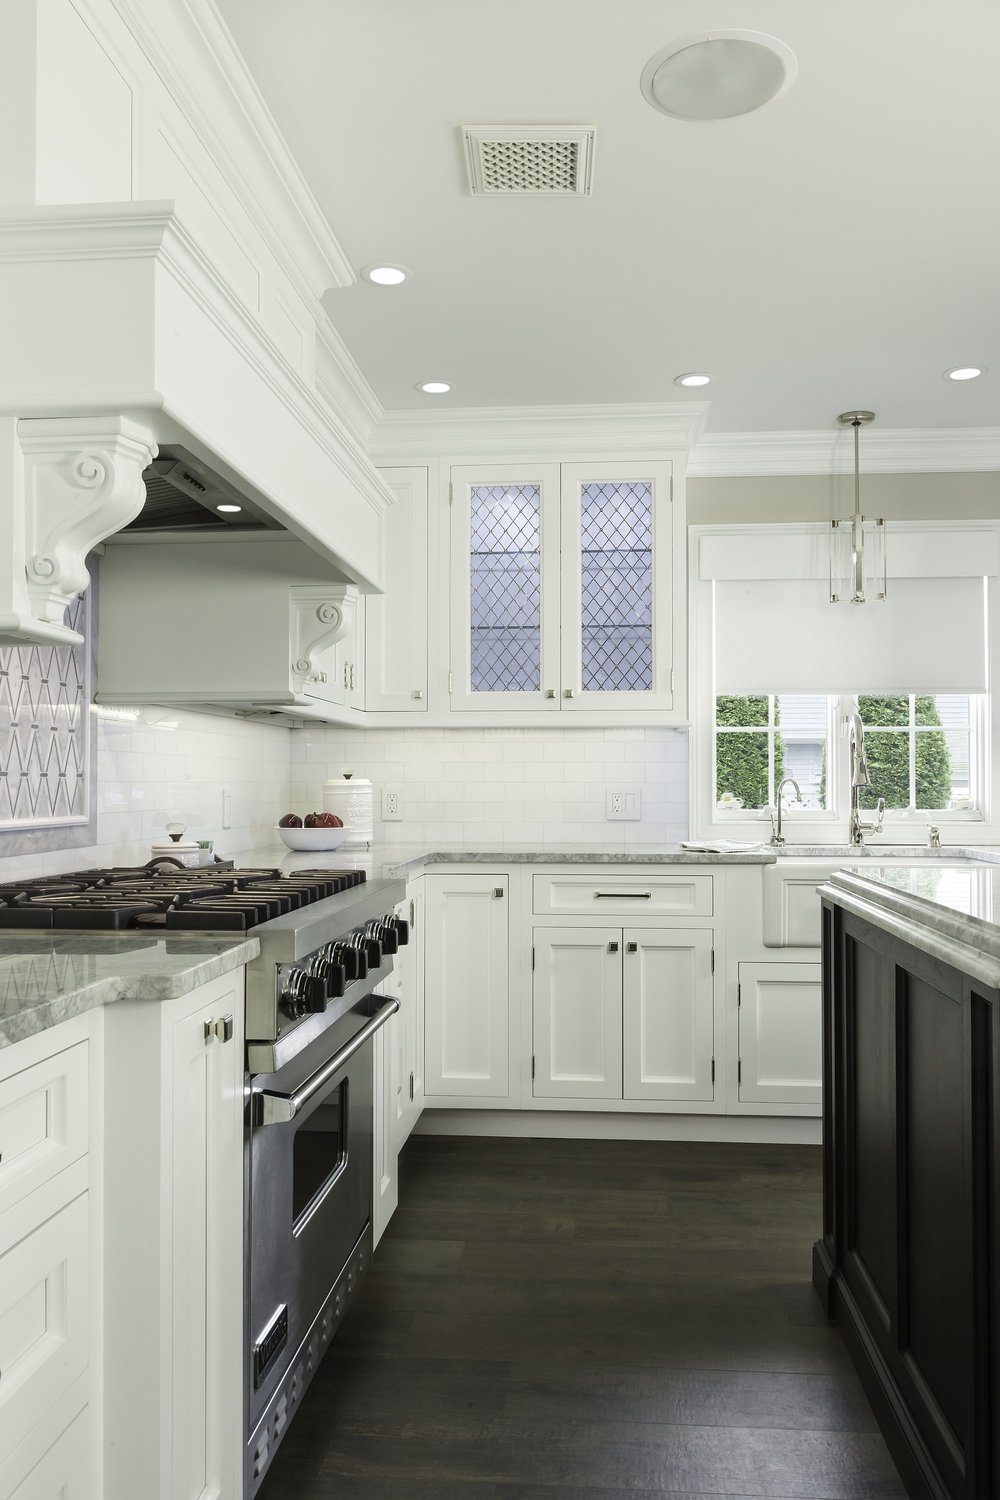 Transitional style kitchen with custom built range hood